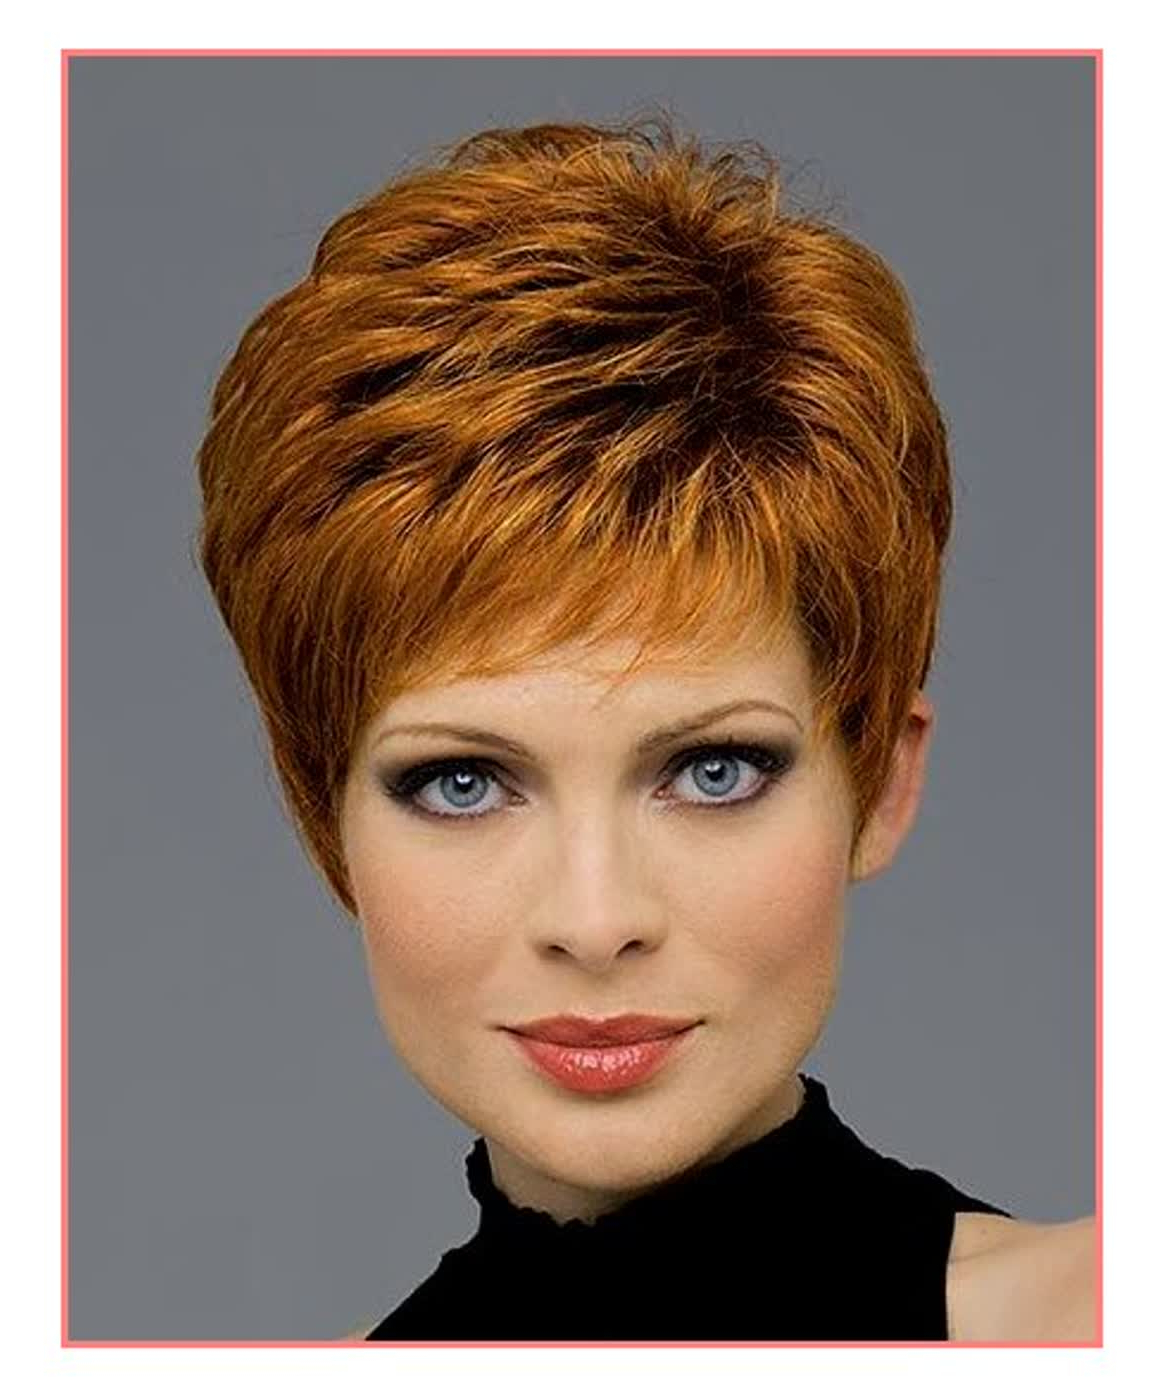 Ladies Hairstyles For Over 50S   Women Hairstyles Regarding Short Hairstyles For The Over 50S (View 9 of 25)